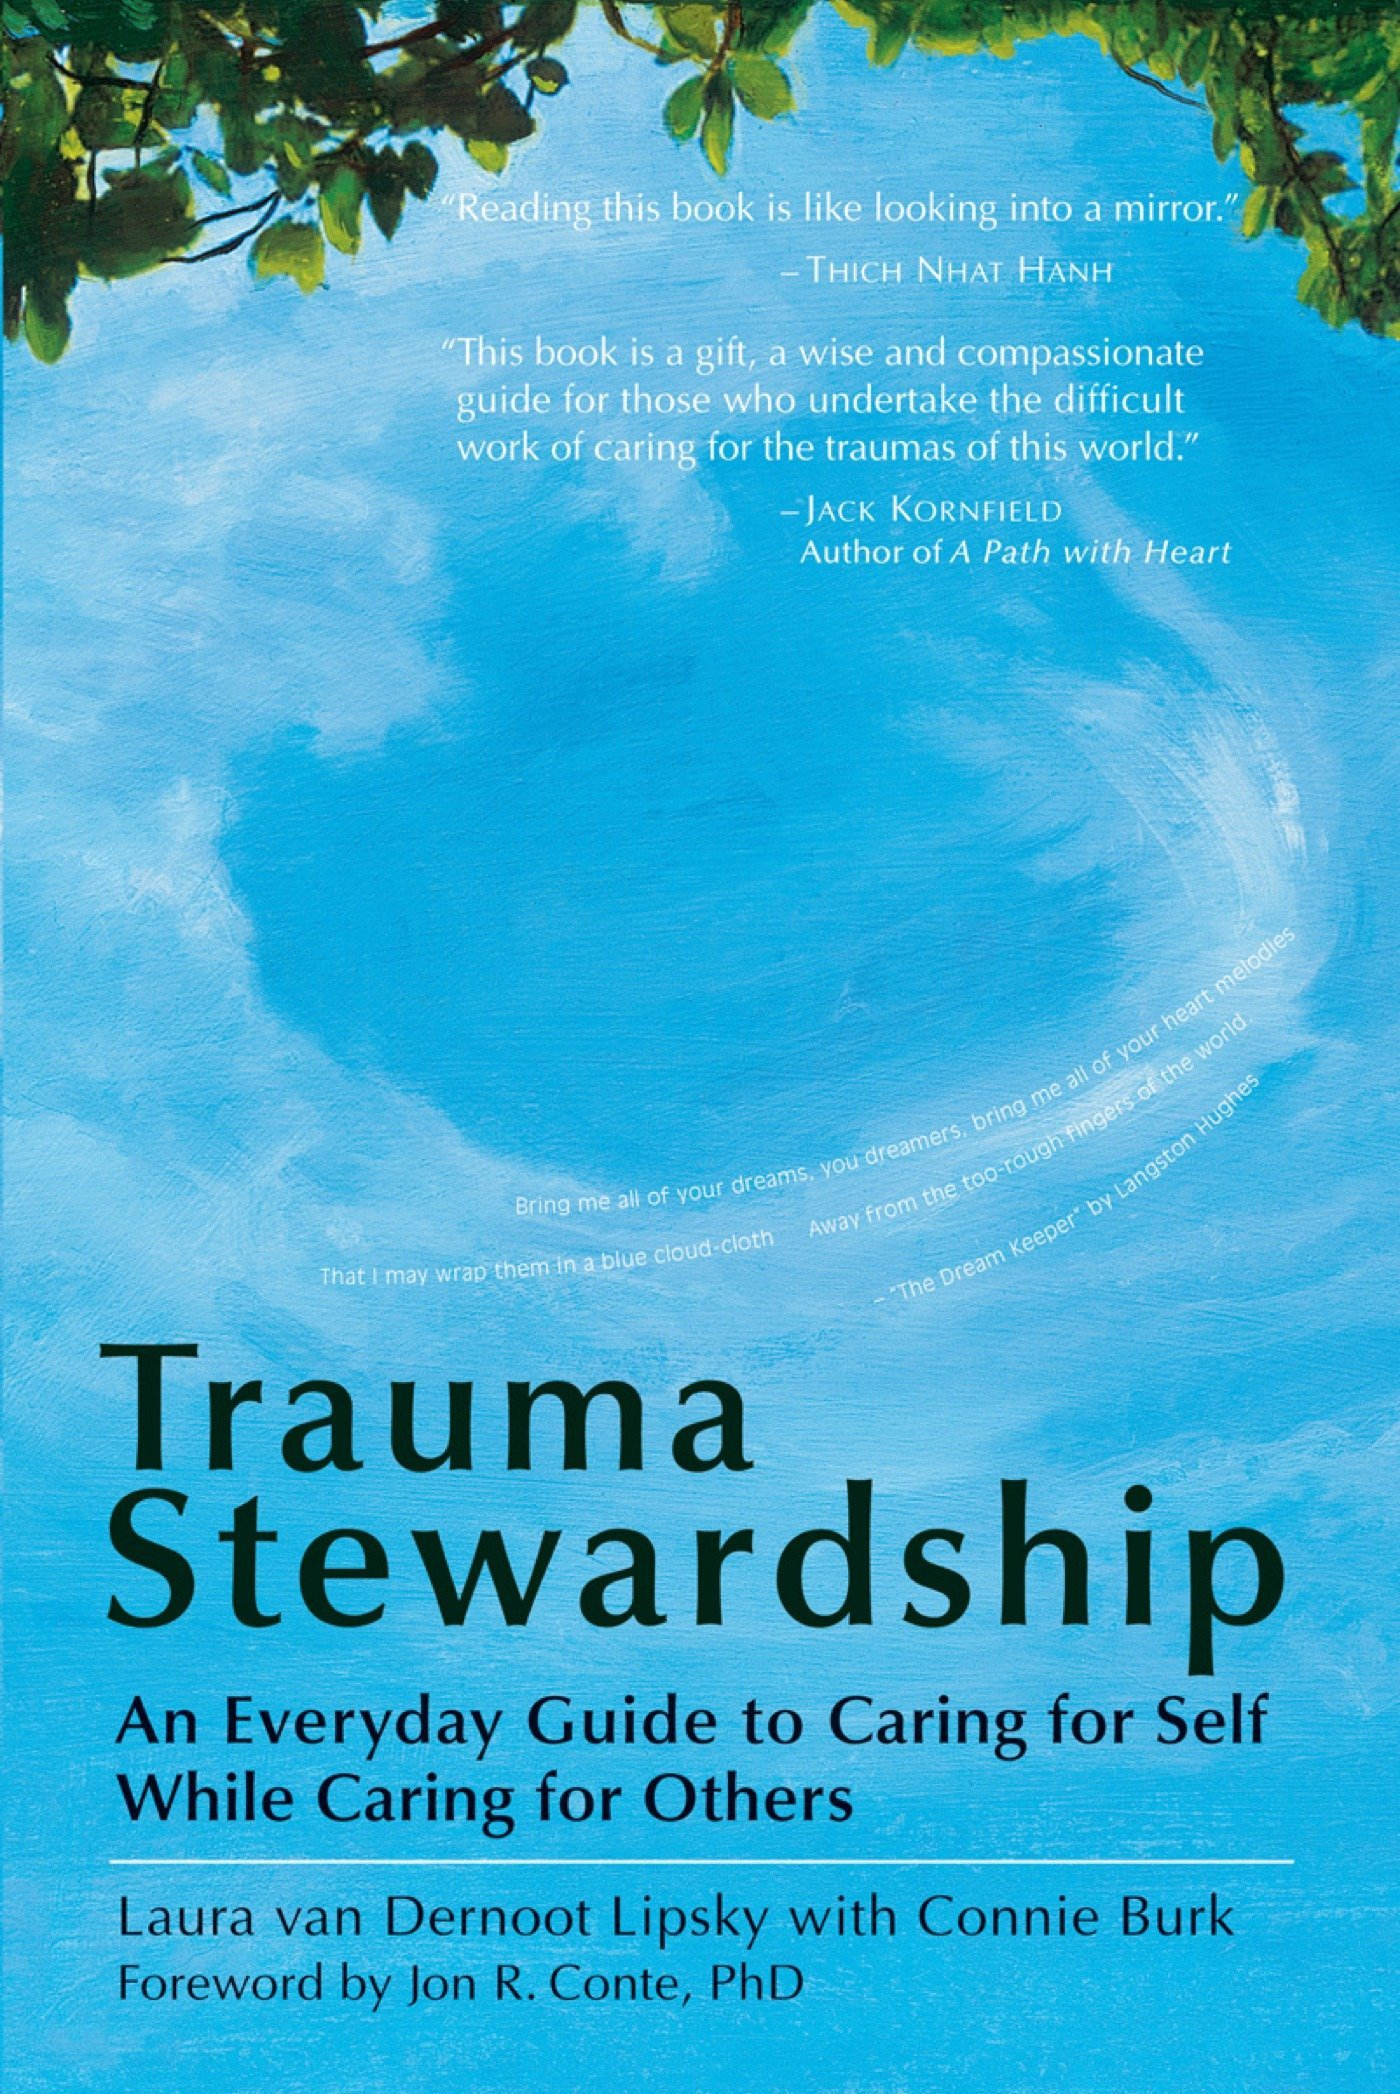 trauma stewardship an everyday guide to caring for self while